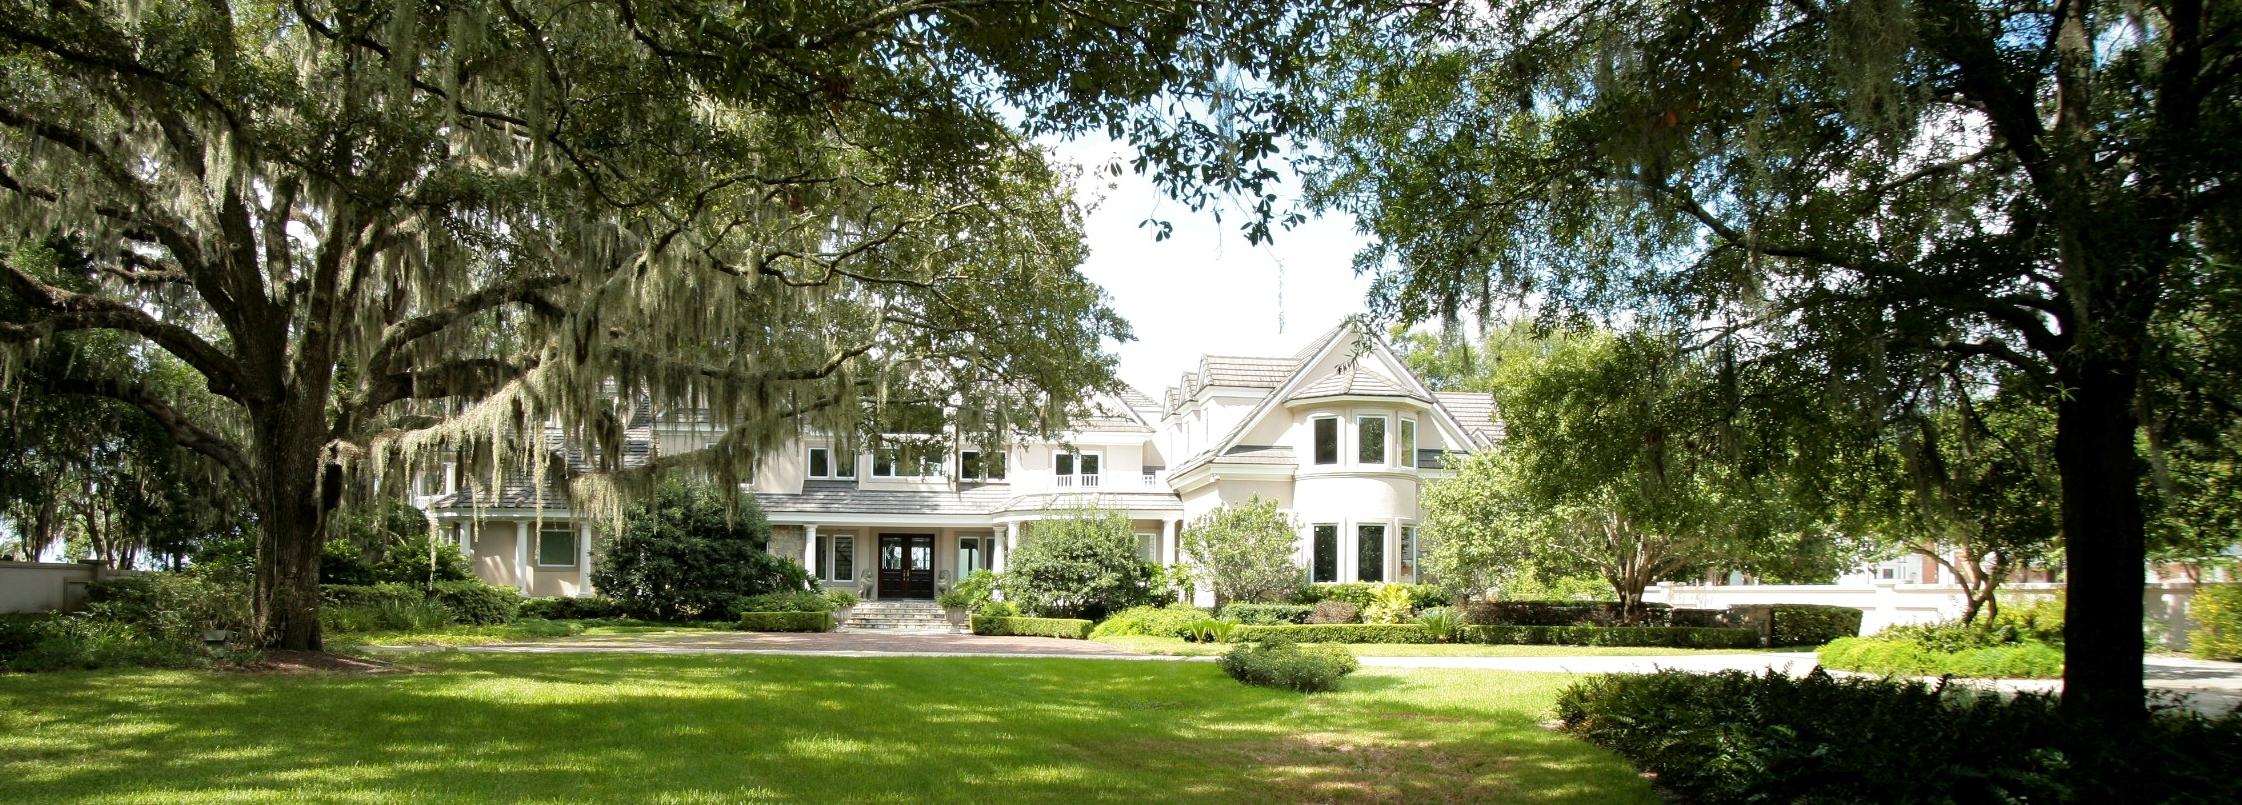 Former home of NFL franchise Jacksonville Jaguars owners, Wayne and Delores Barr Weaver. The Weavers donated the home to The Community Foundation for Northeast Florida. (Photo: Business Wire)